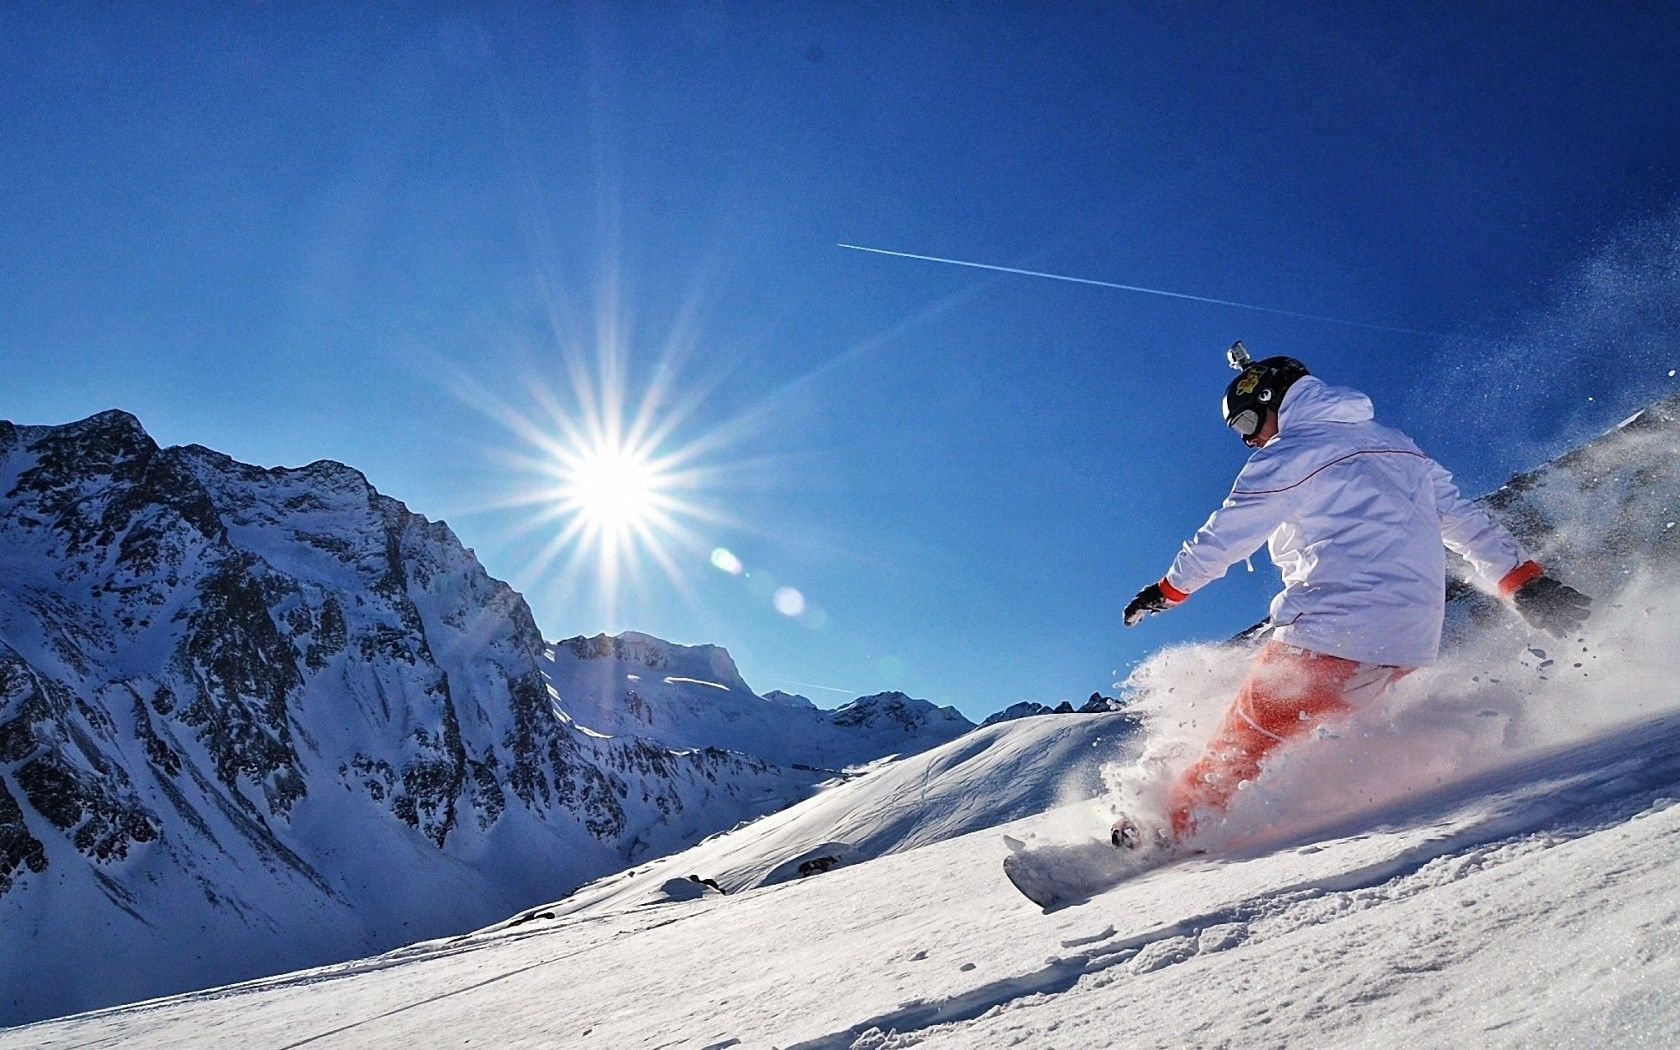 139829 download wallpaper Sports, Snowboard, Snow, Adrenalin, Adrenaline, Mountains, Sun screensavers and pictures for free